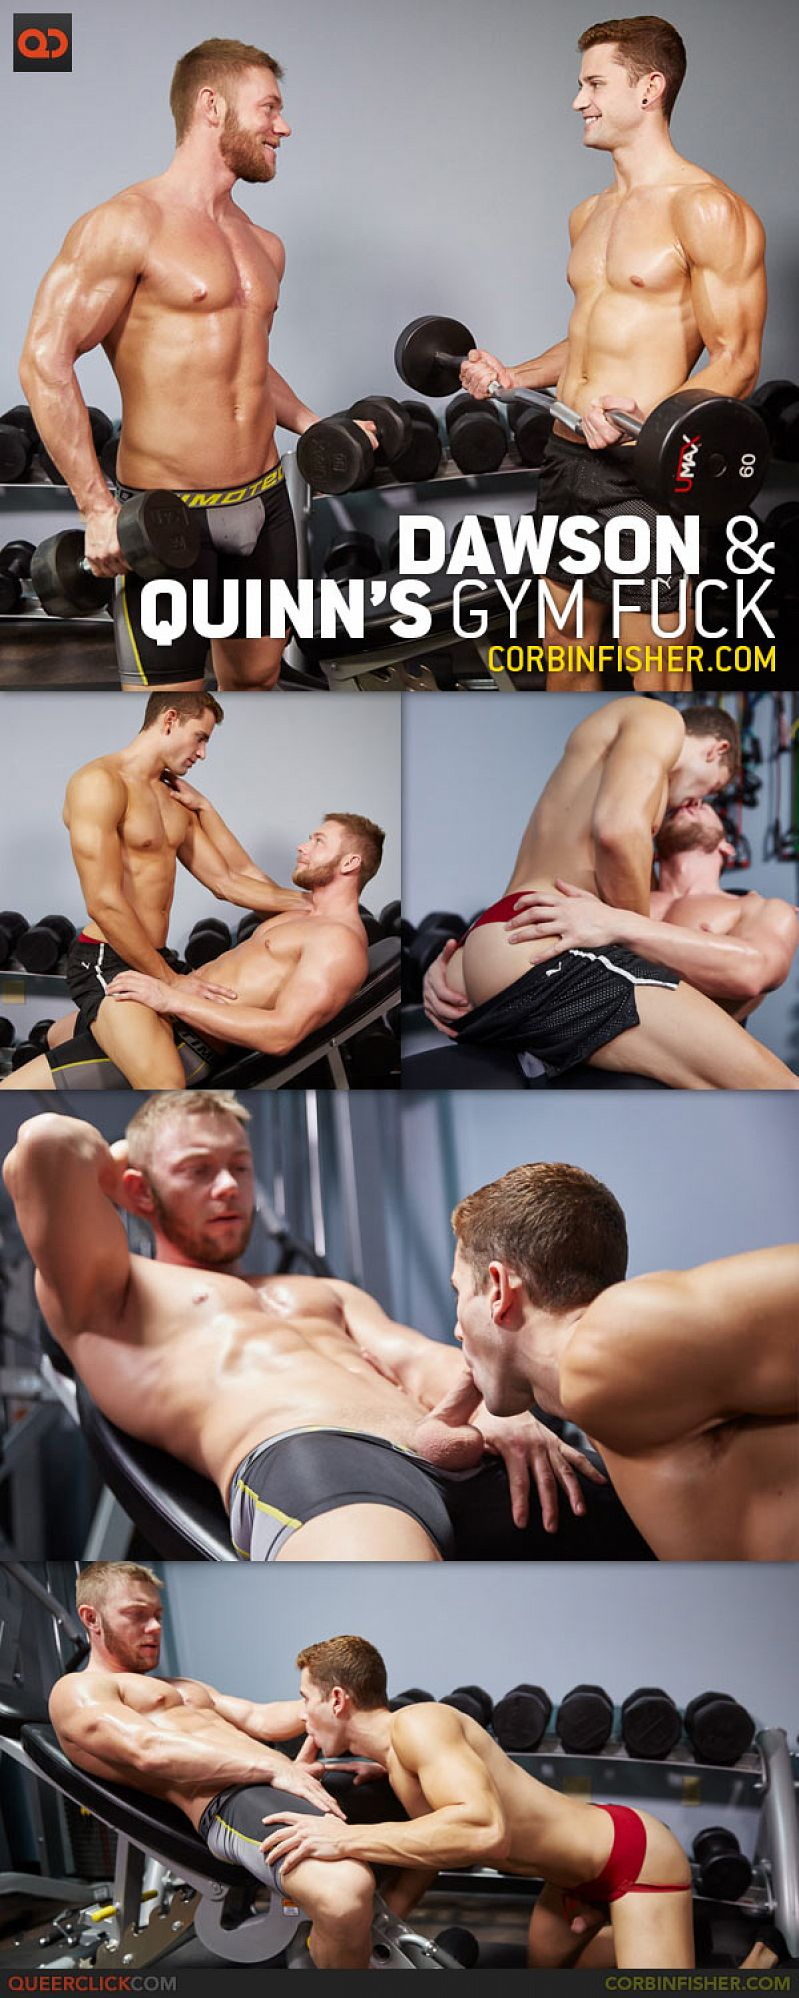 CorbinFisher – Dawson and Quinn's Gym Fuck